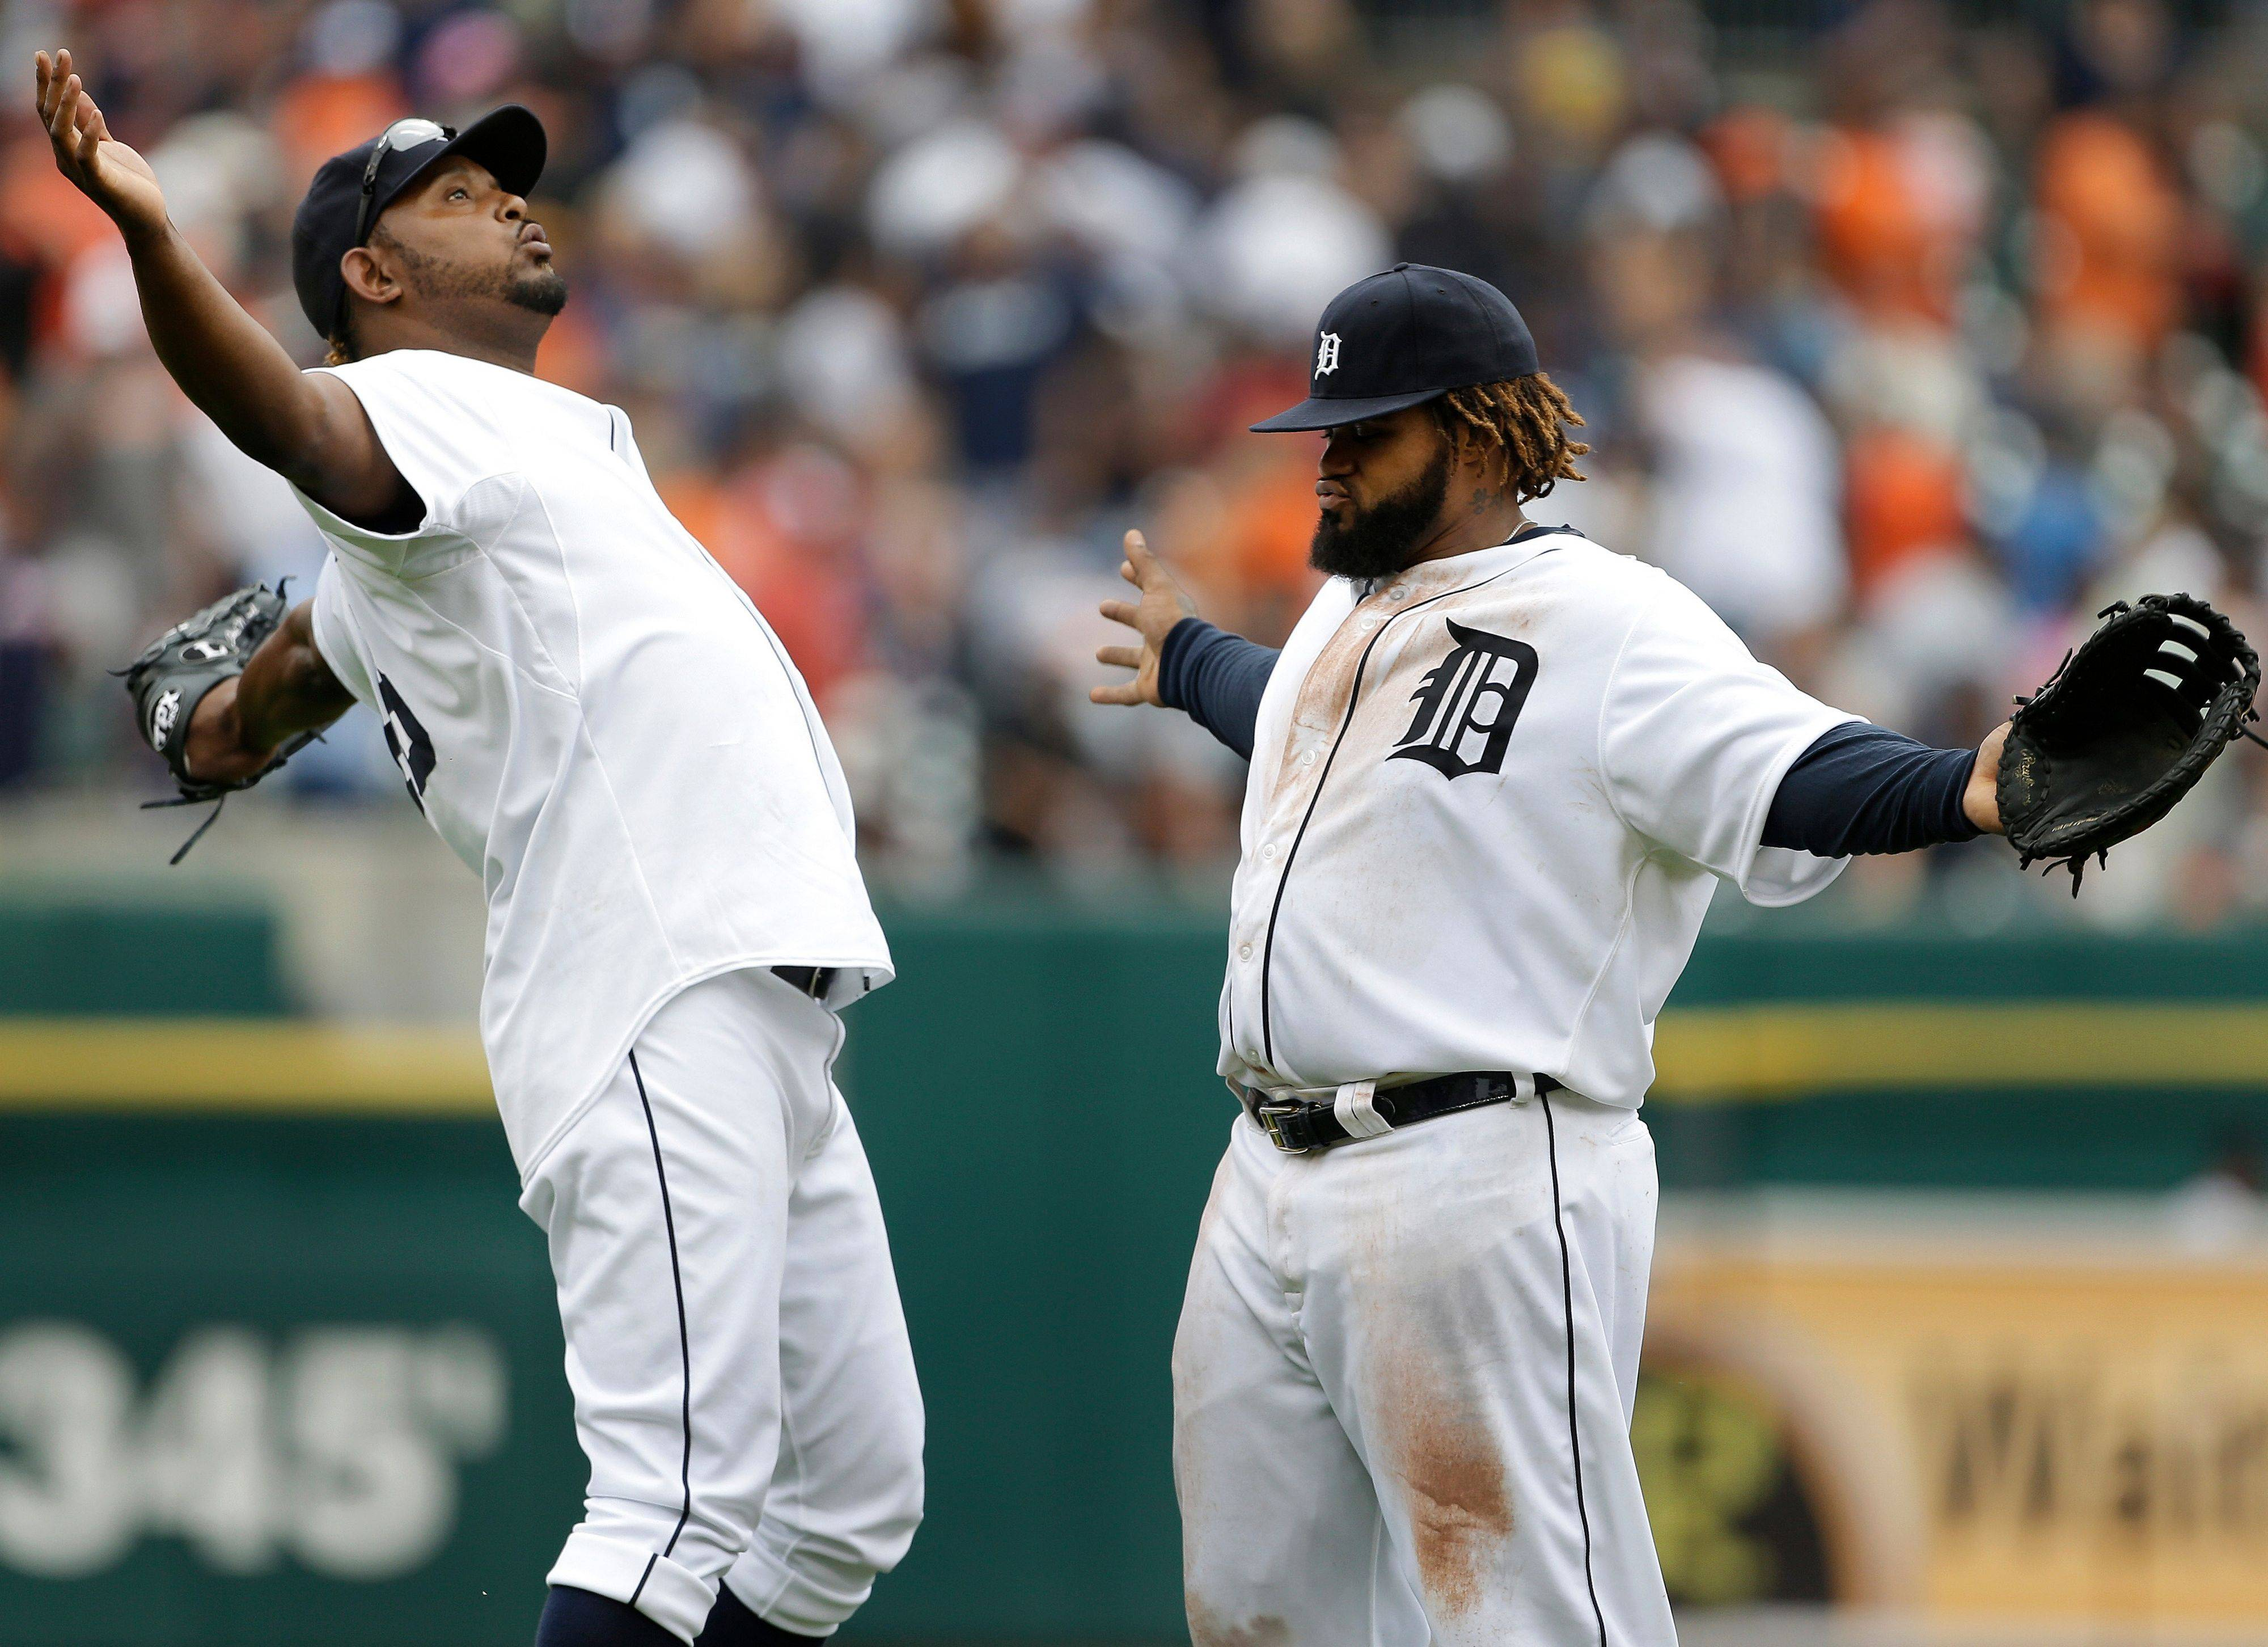 Detroit's Jose Valverde, left, and Prince Fielder celebrate their 5-2 win over the Angels on Thursday. The Tigers have won 10 of their last 12 and are just 1� games behind the White Sox in the AL Central.